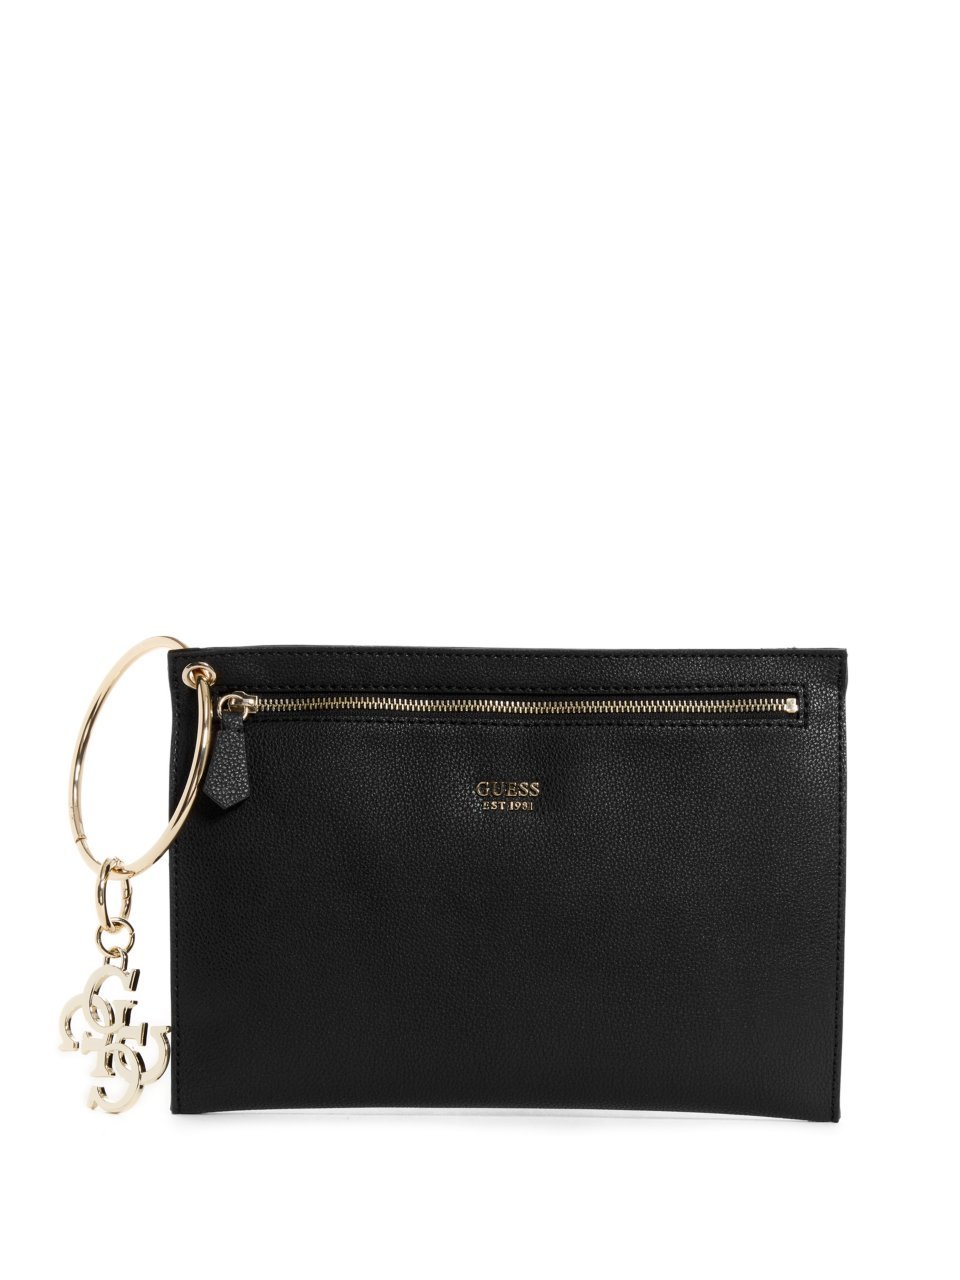 Guess Women HWVG6853260 Daily Clutch Bag Black Size: One Size